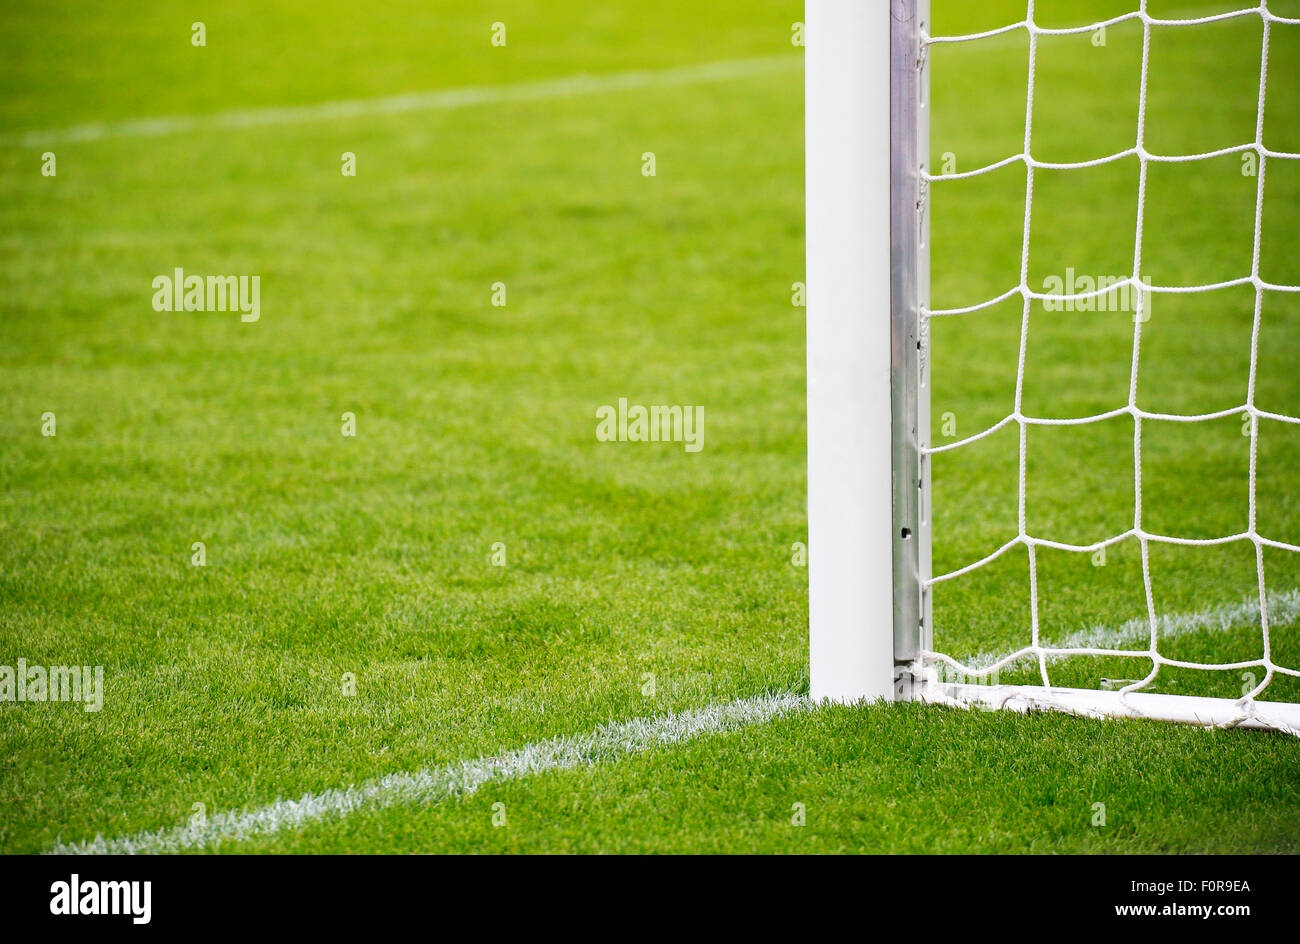 Soccer Playground Fussballplatz Stock Photo 86564194 Alamy